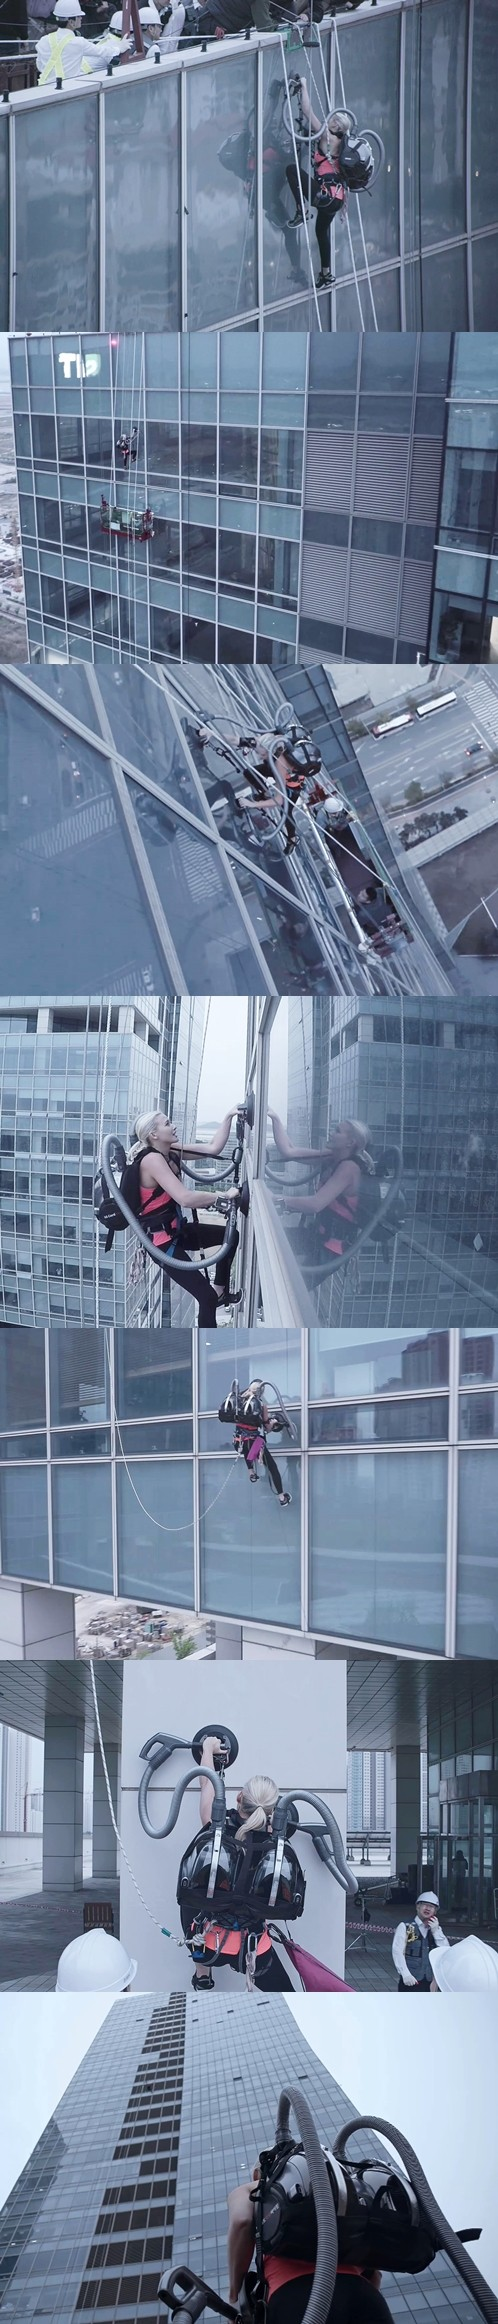 Series seven images showing Sierra climbing up the building with LG CordZero™ canister